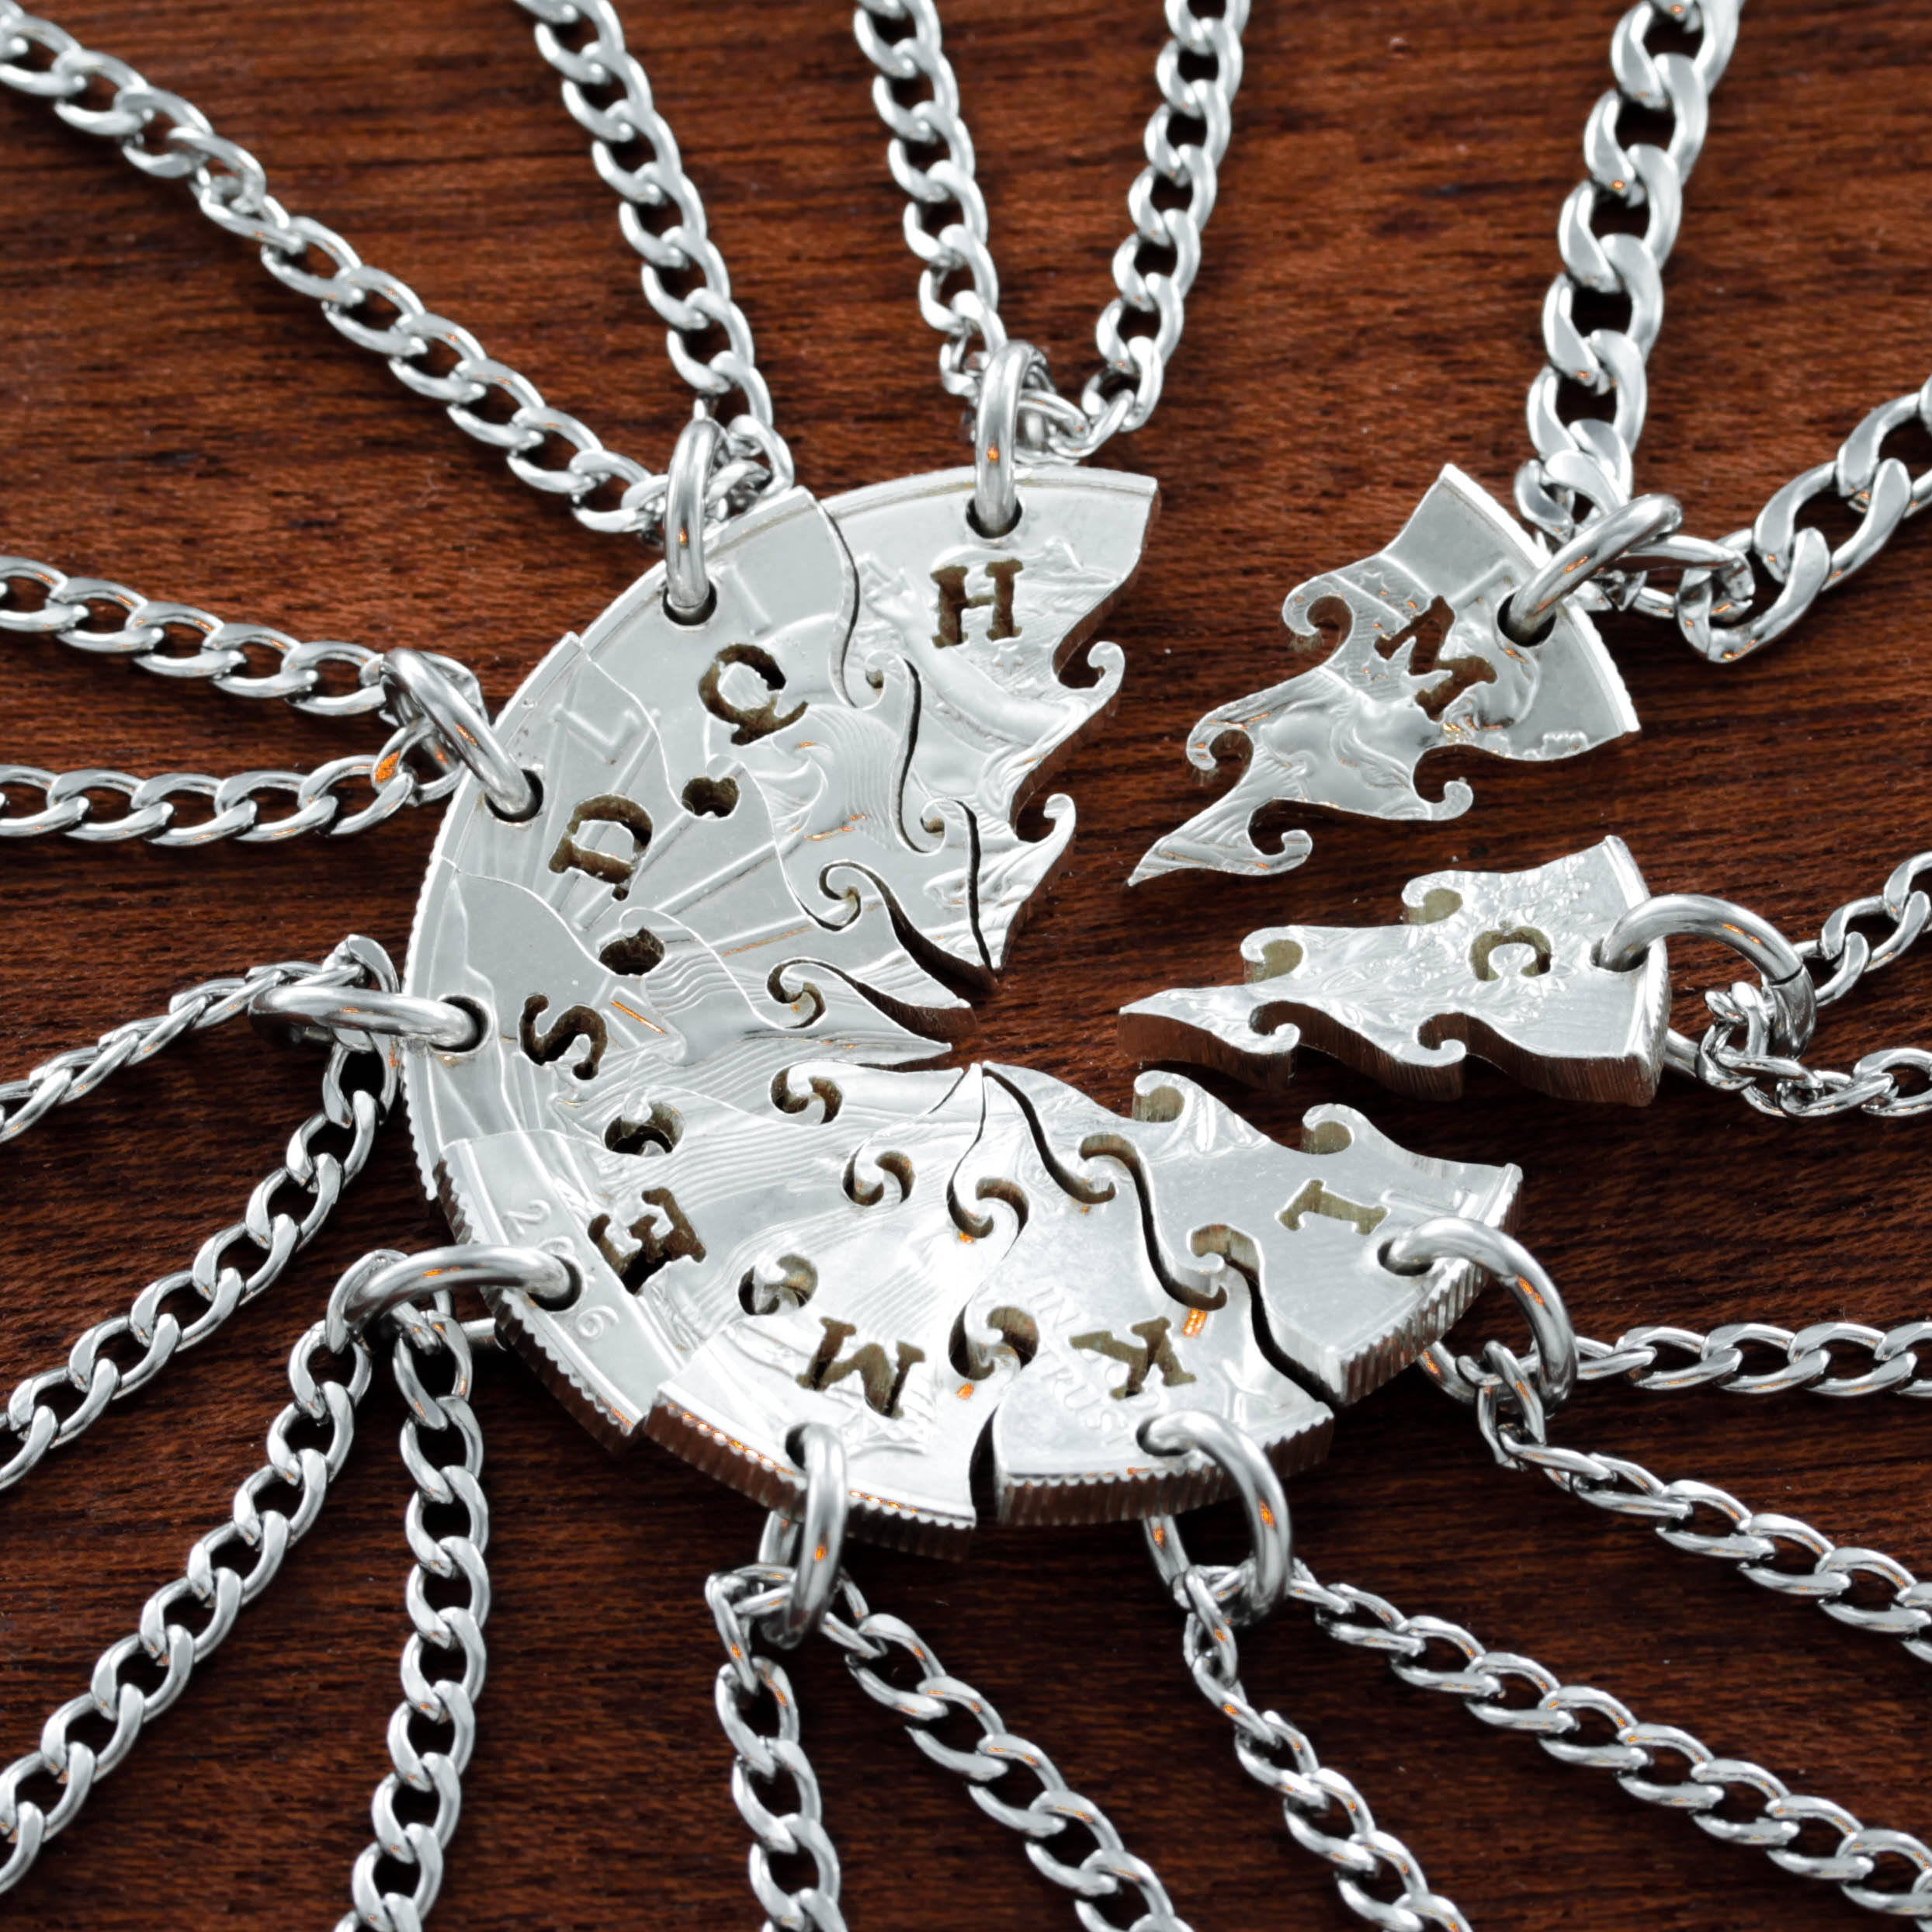 jewelry dollar silver chains free morgan treasures silvertone real american coin overstock shipping product today watches necklace